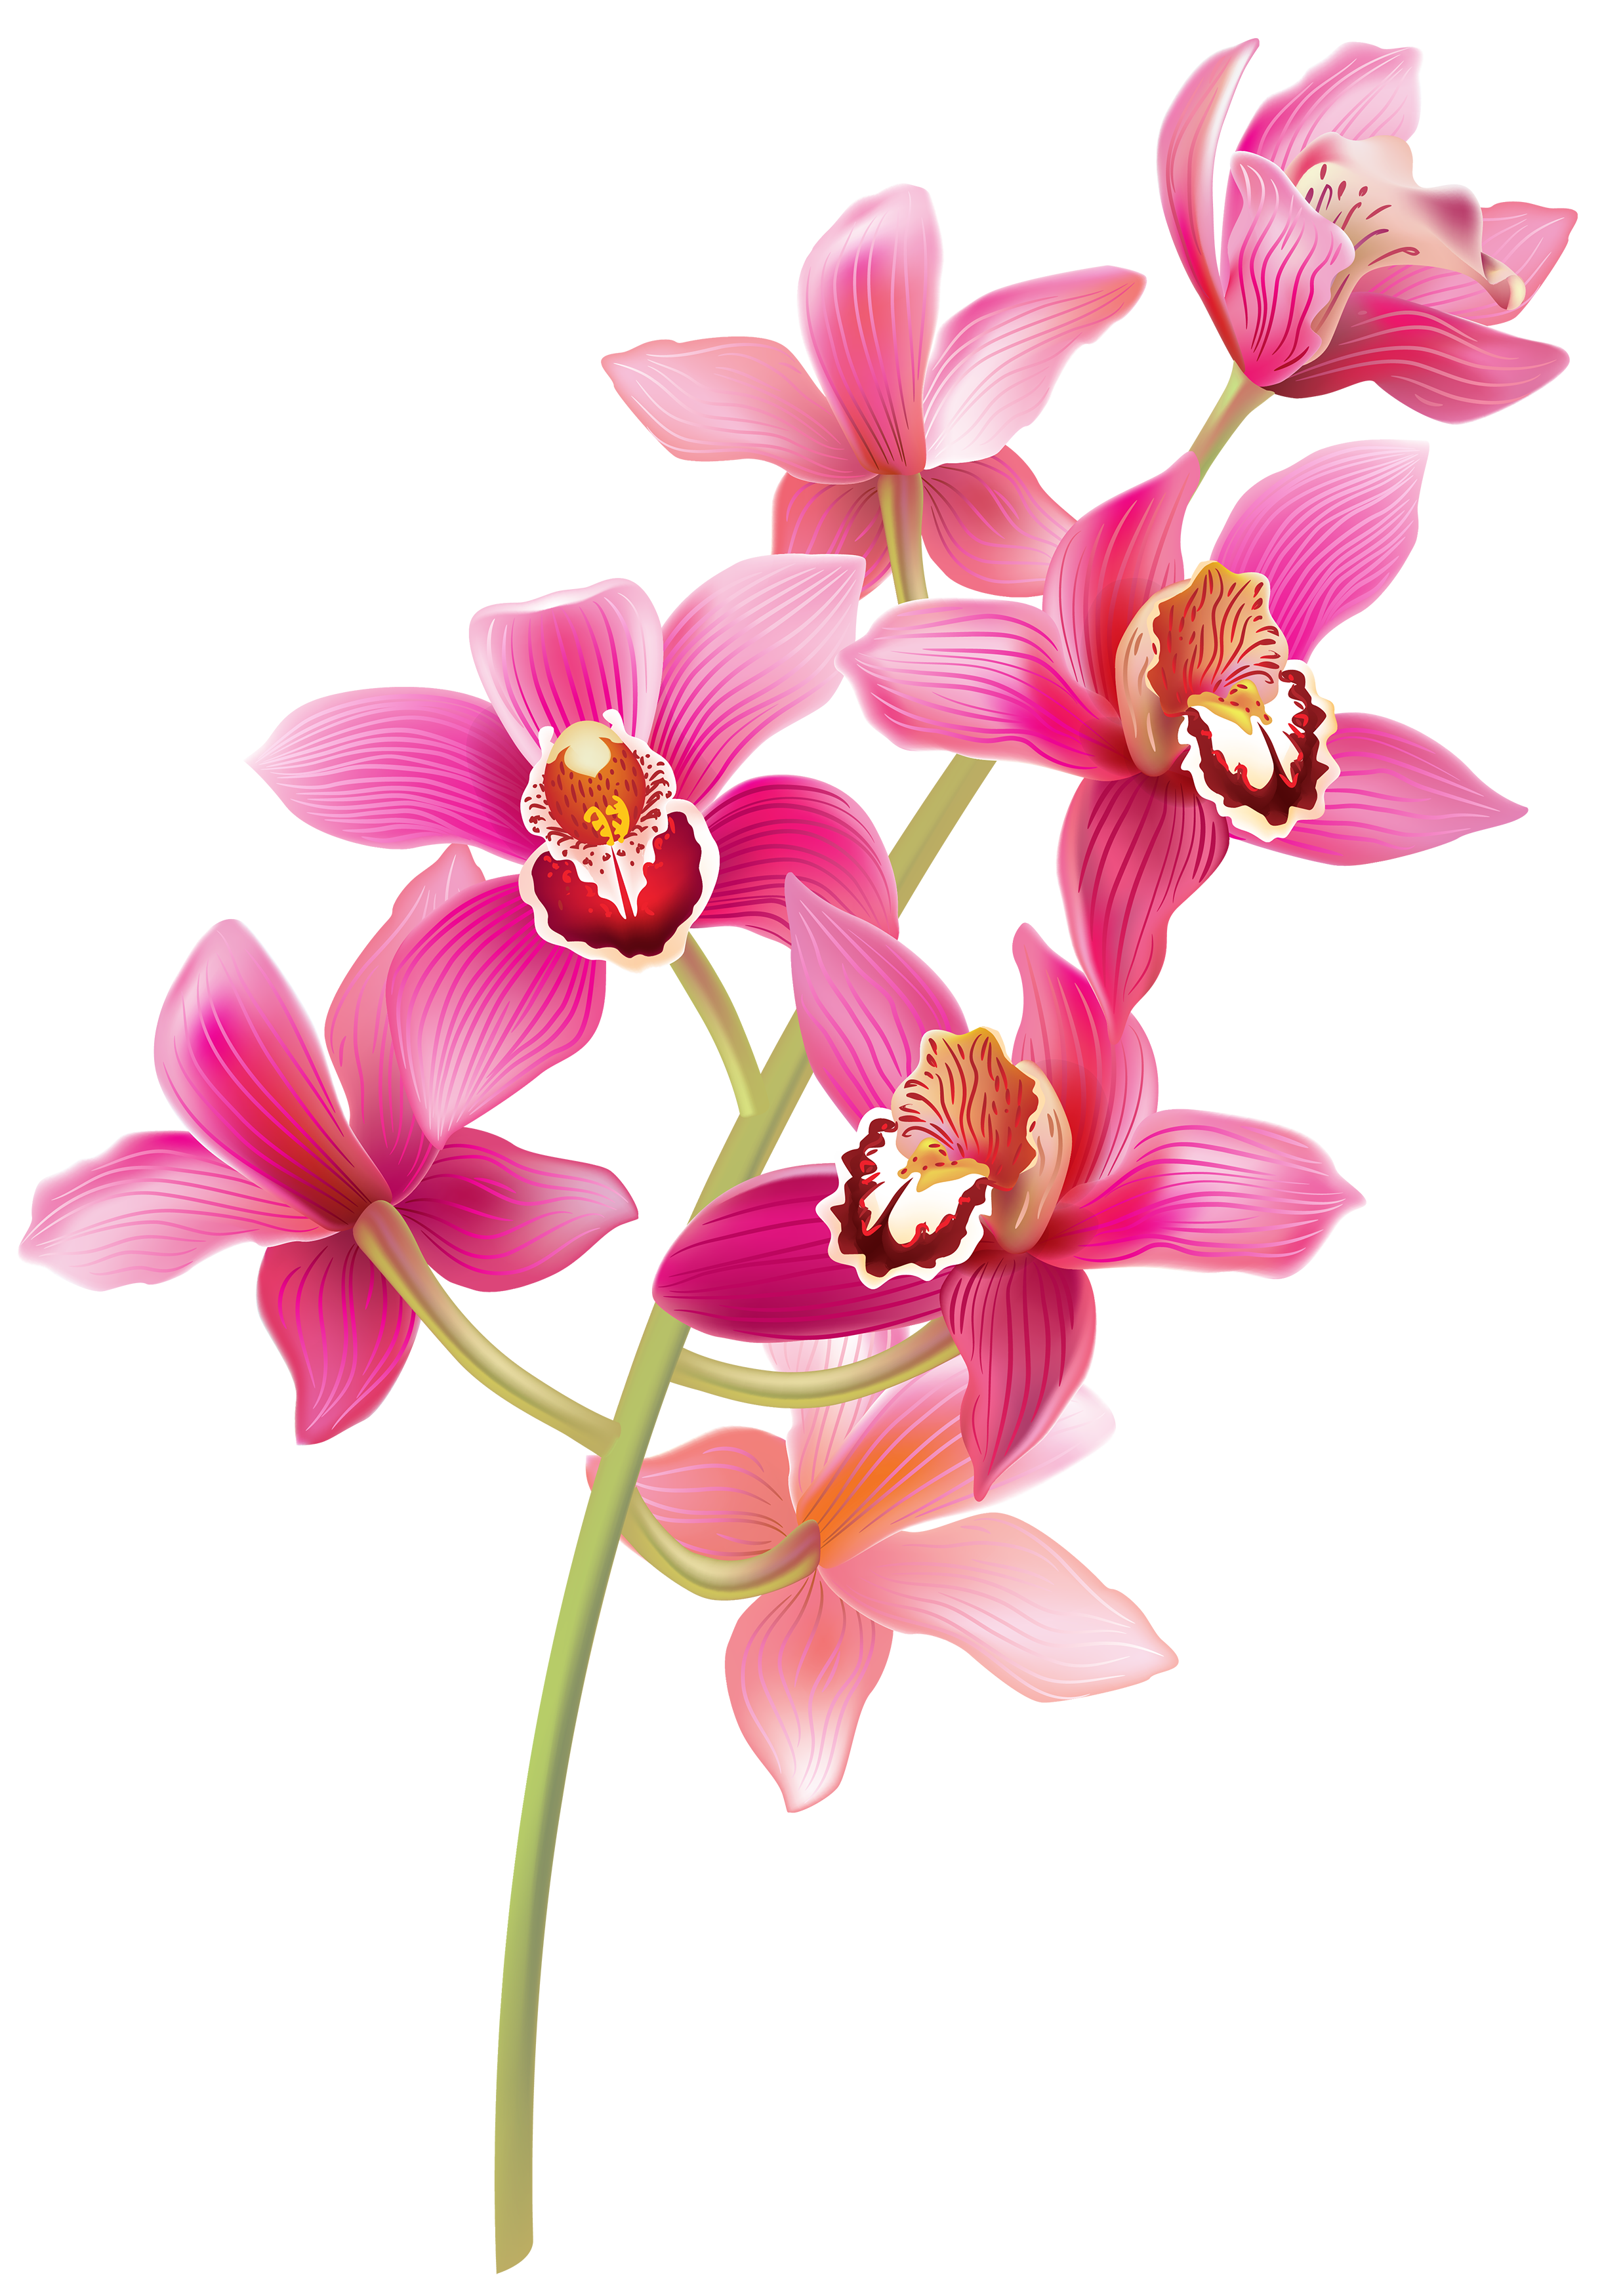 Pink flower with stem clipart clipart free library Stem Pink Orchids PNG Clipart - Best WEB Clipart clipart free library